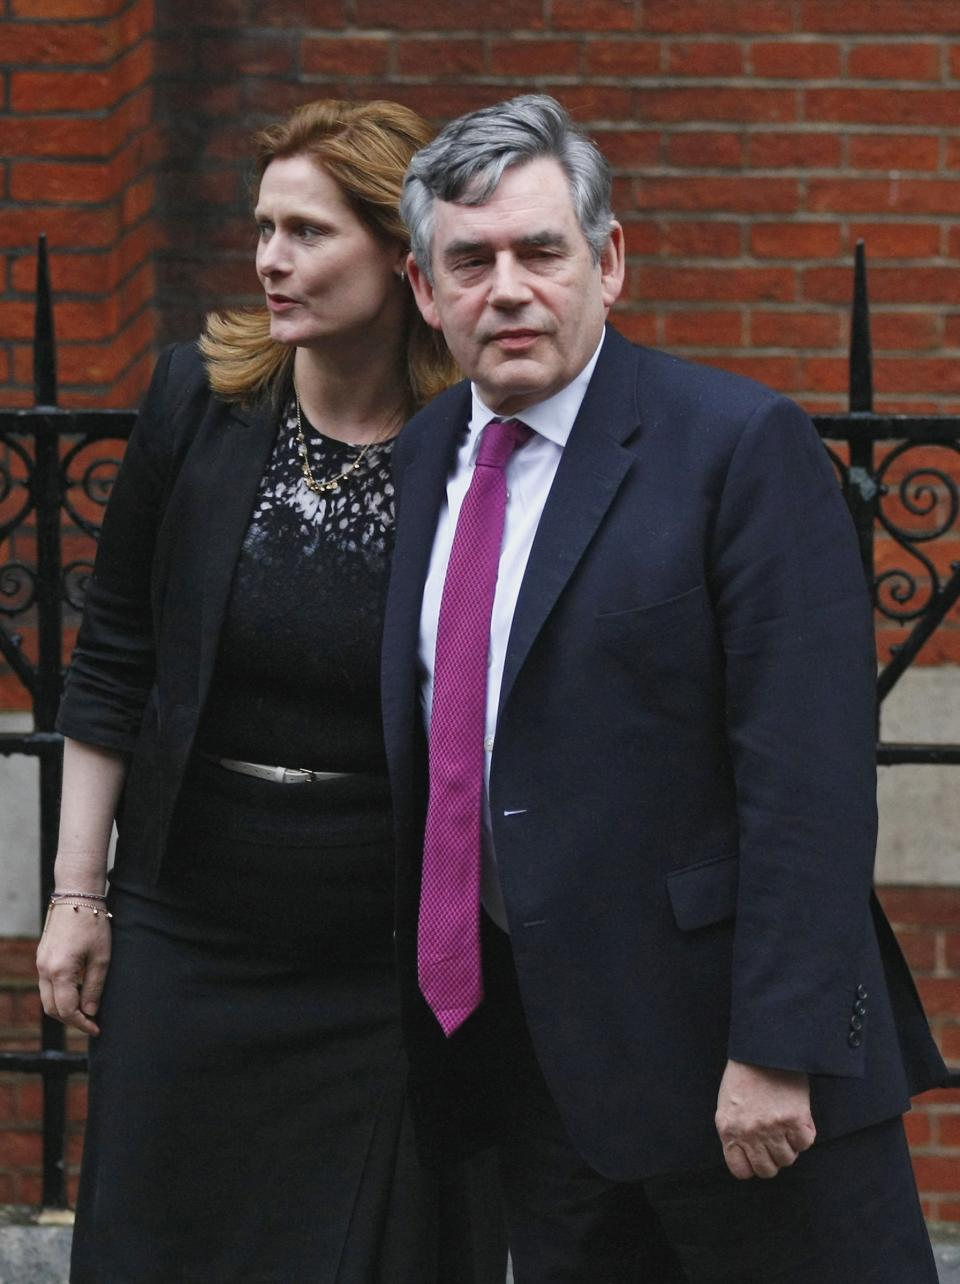 Former Prime Minister Gordon Brown arrives at the High Court with his wife Sarah to give evidence at the Leveson Inquiry, London, Monday, June 11, 2012. Former UK prime minister Gordon Brown and current Treasury chief George Osbourne give evidence at Britain's inquiry into media ethics. (AP Photo/Tim Hales)